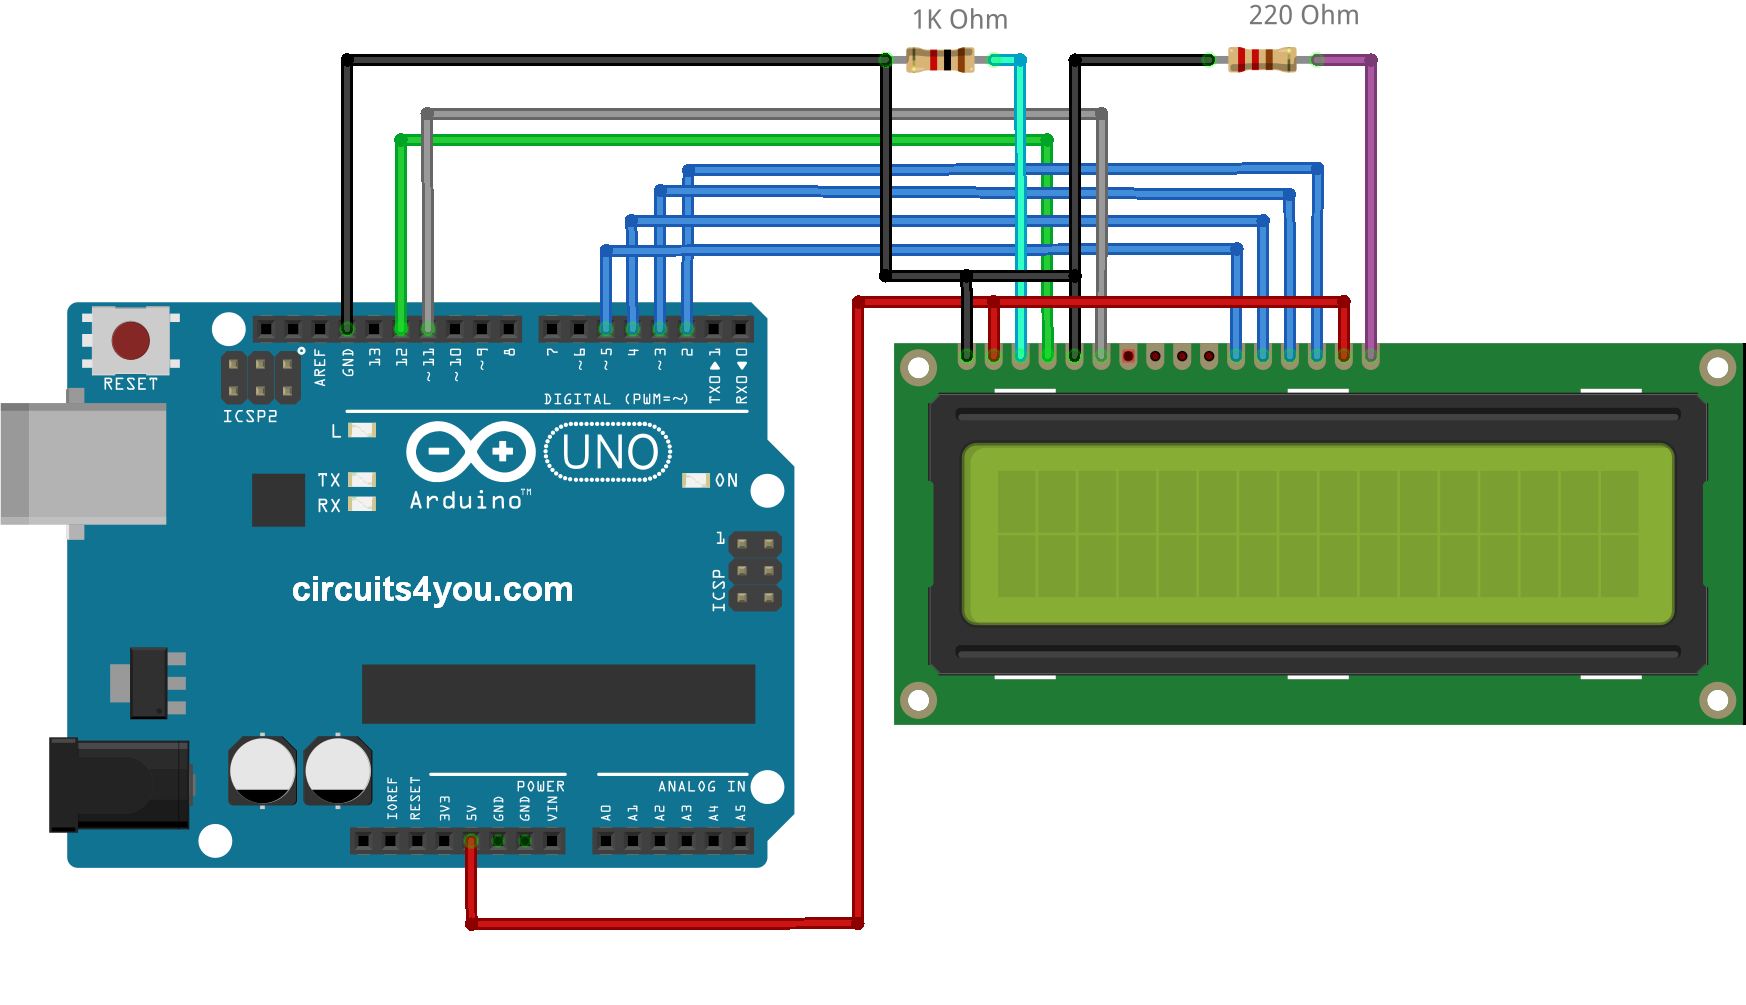 16 u00d72 lcd interface with arduino uno circuits4you com circuit board 250520 circuit board 22004486